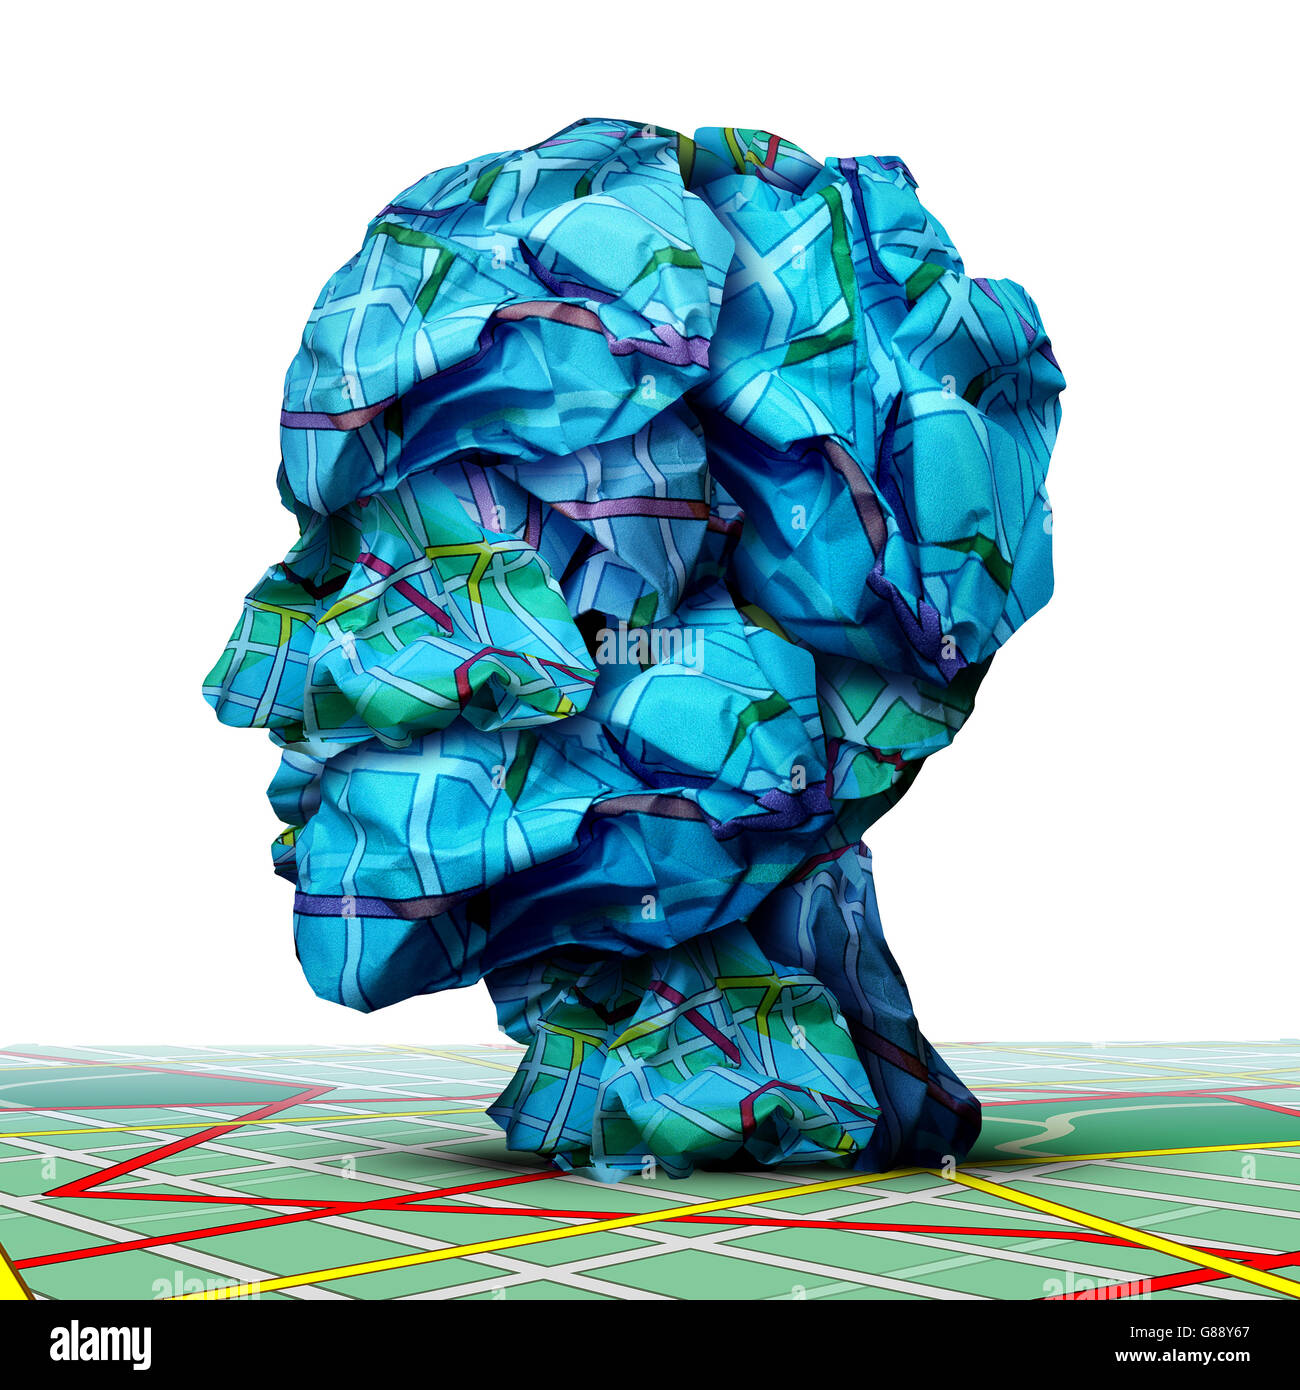 Human road map concept as a group of crumpled traffic maps shaped as a head as a business or life direction metaphor - Stock Image